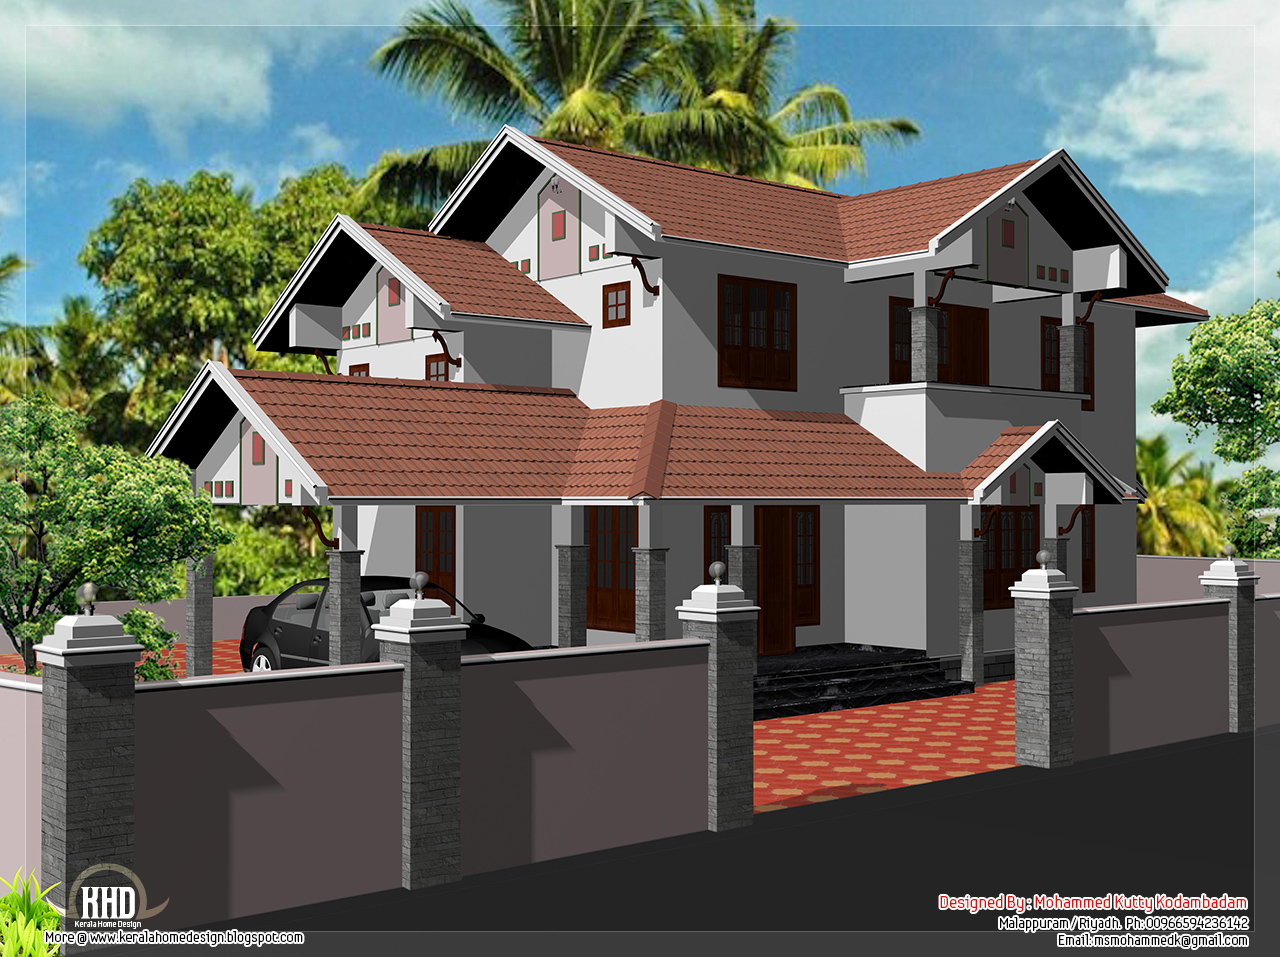 2000 house elevation design house design plans for 2000 sq ft homes